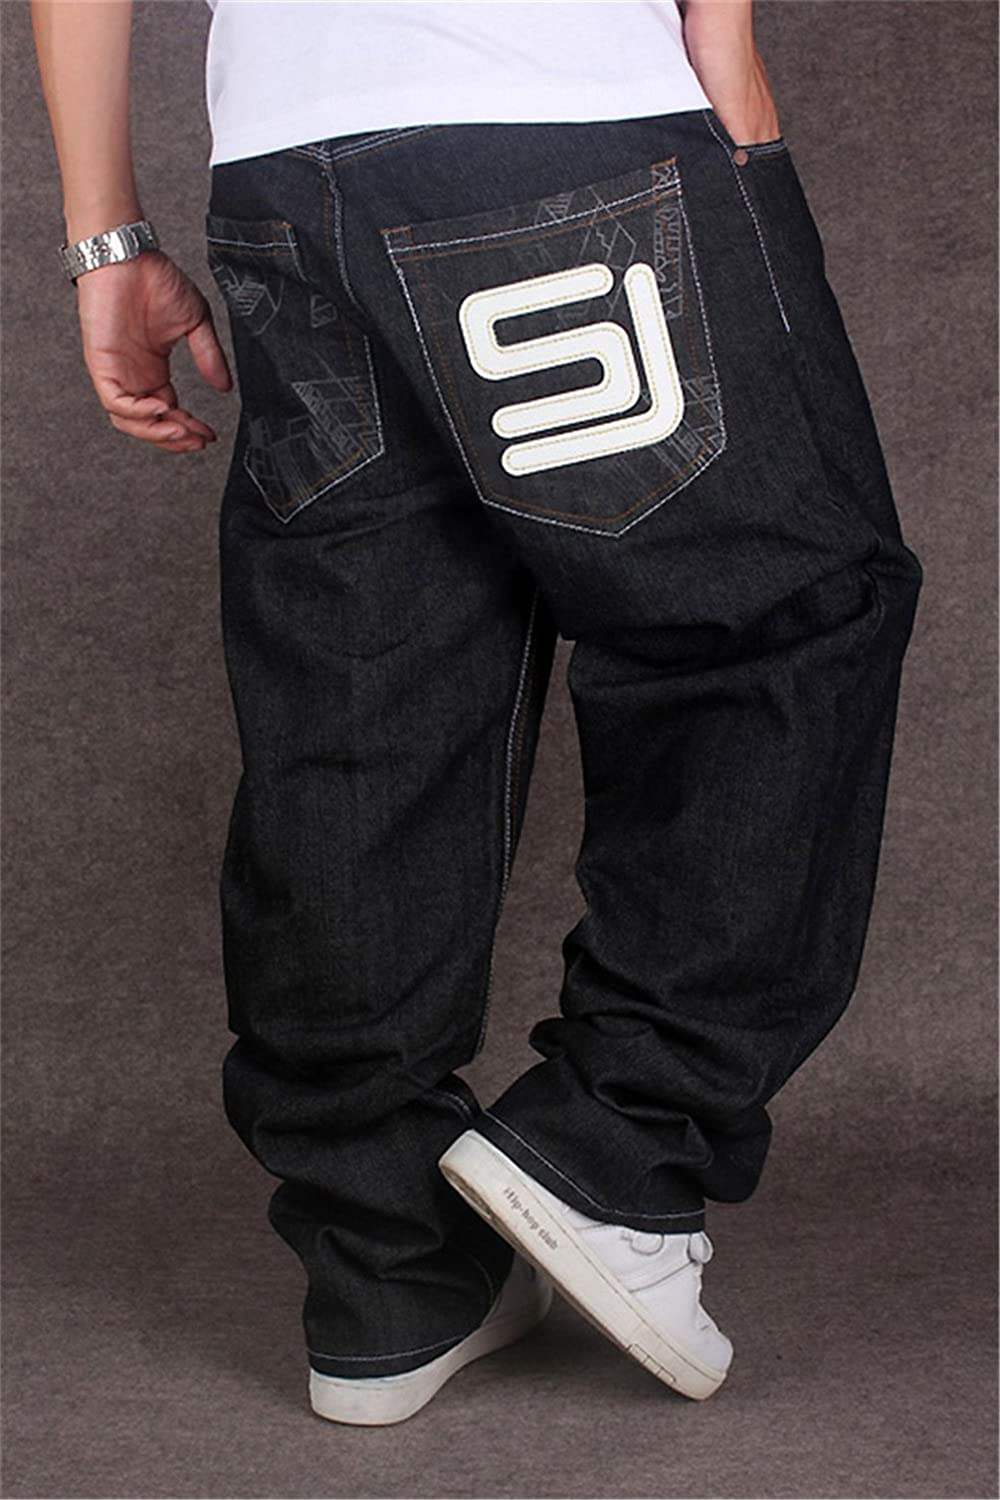 Mrainy Mens Casual Loose Baggy Hiphop Black Jeans